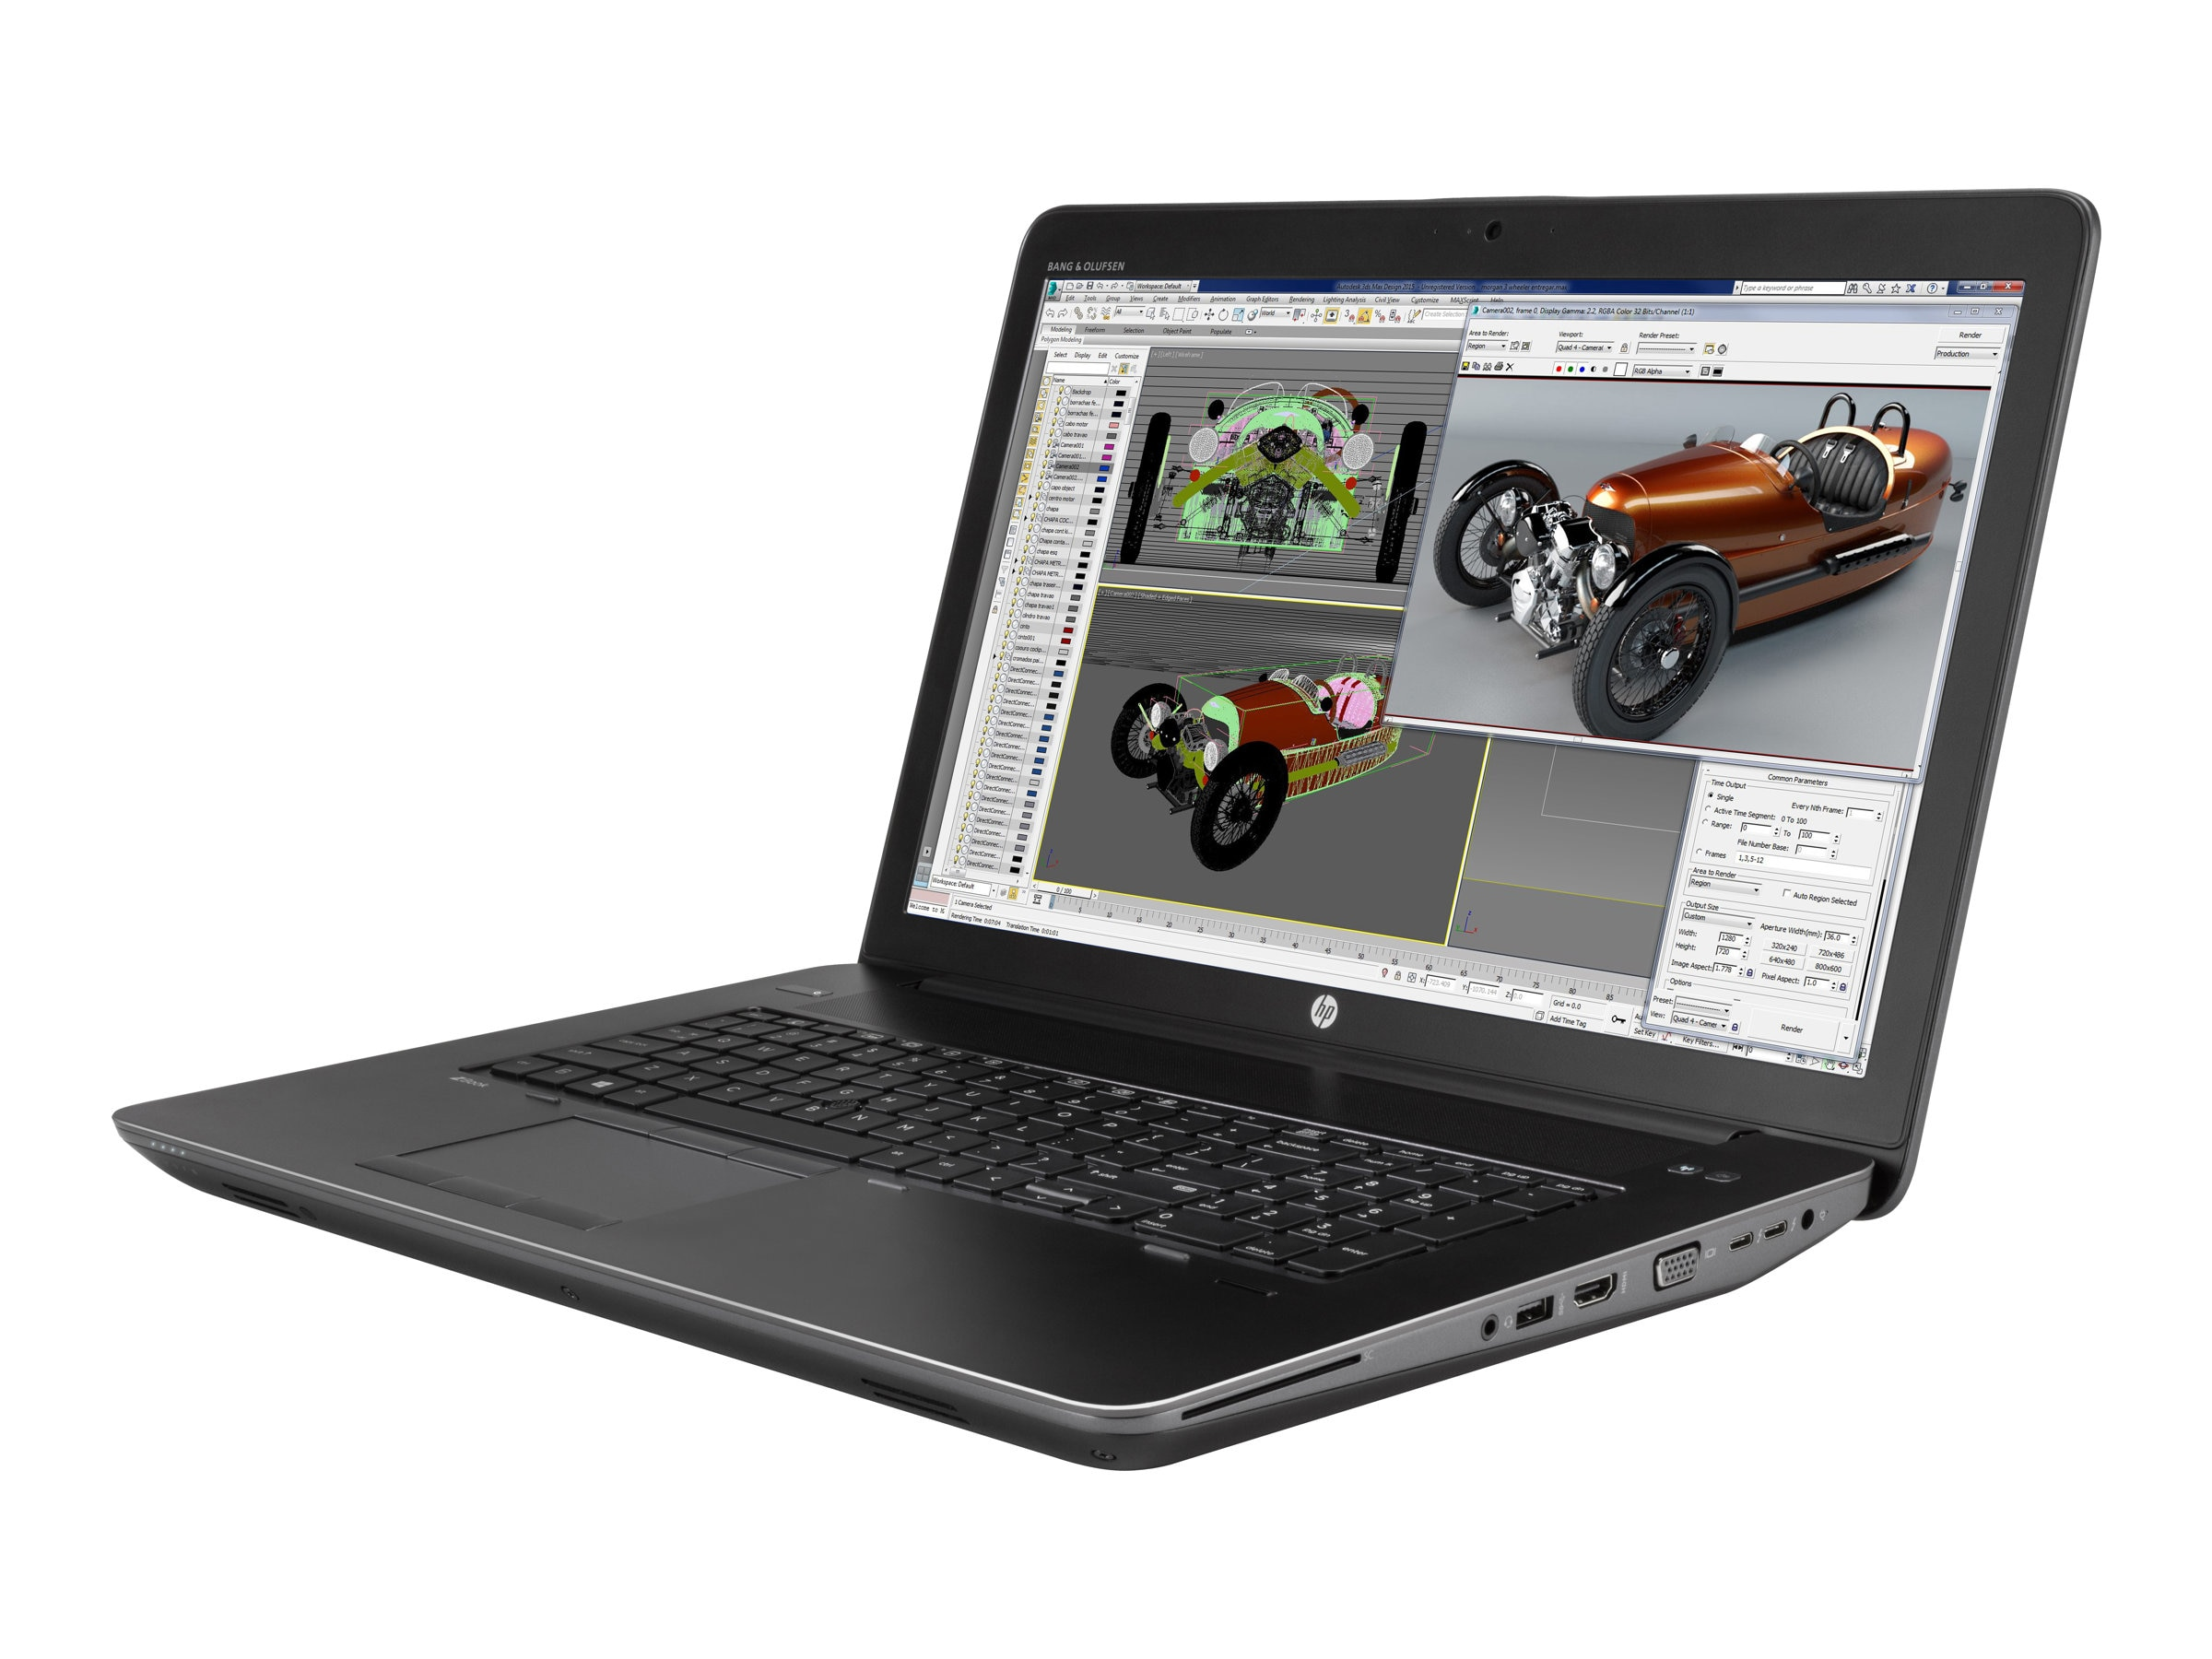 HP ZBook 17 G3 Core i7-6700HQ 2.6GHz 16GB 512GB PCIe ac GNIC BT FR WC 6C M3000M 17.3 FHD MT W10P64